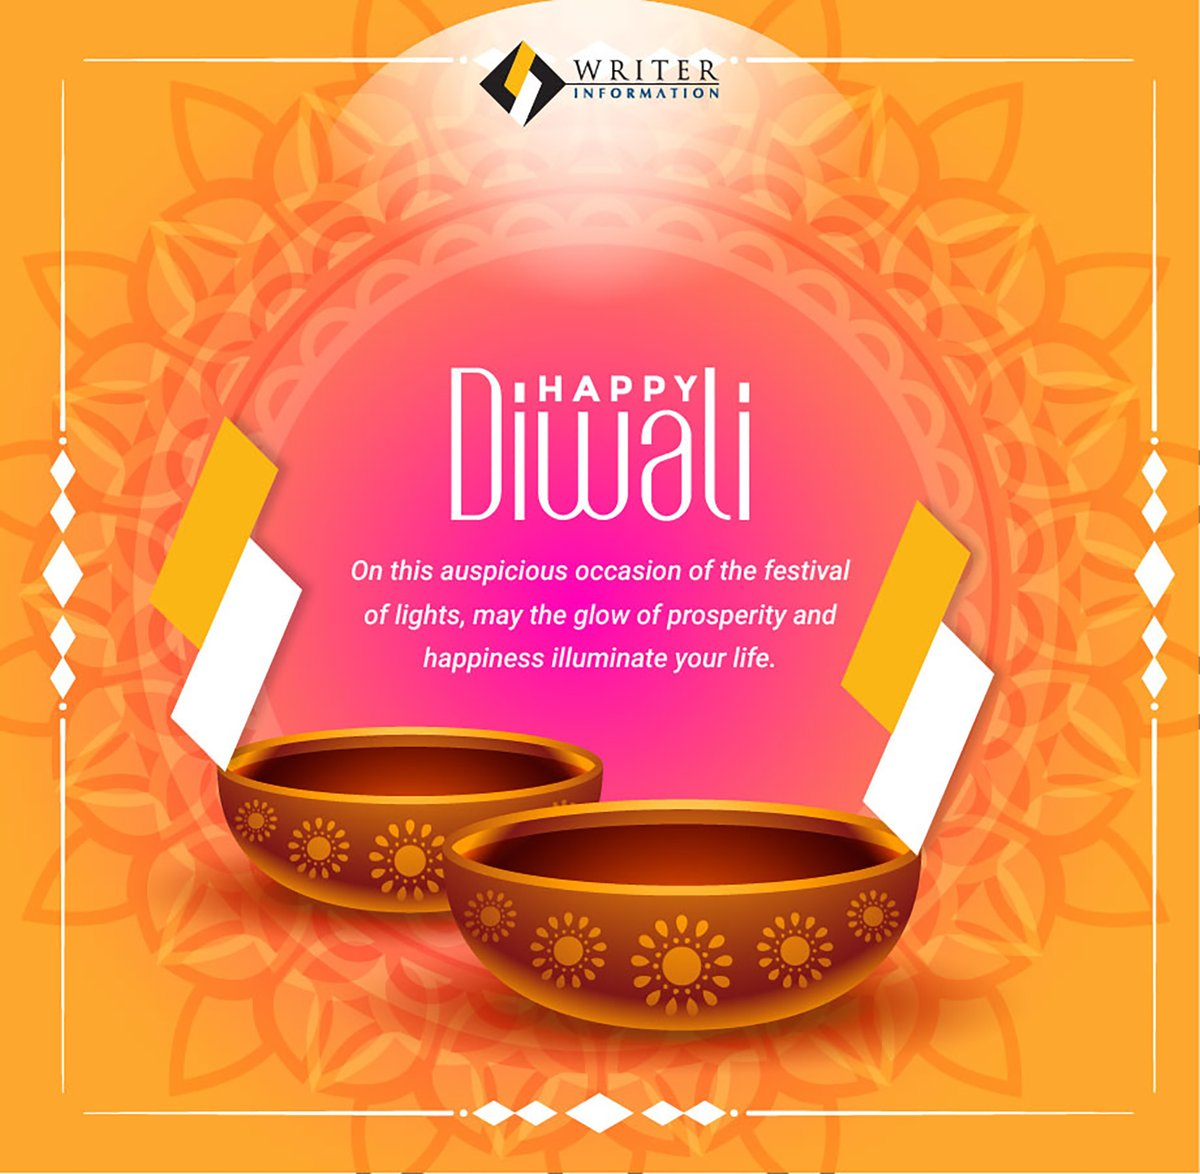 Wishing everyone a SAFE and HAPPY DIWALI.  #DiwaliWithADifference #diwalicelebration #diwaligreetings #Diwali